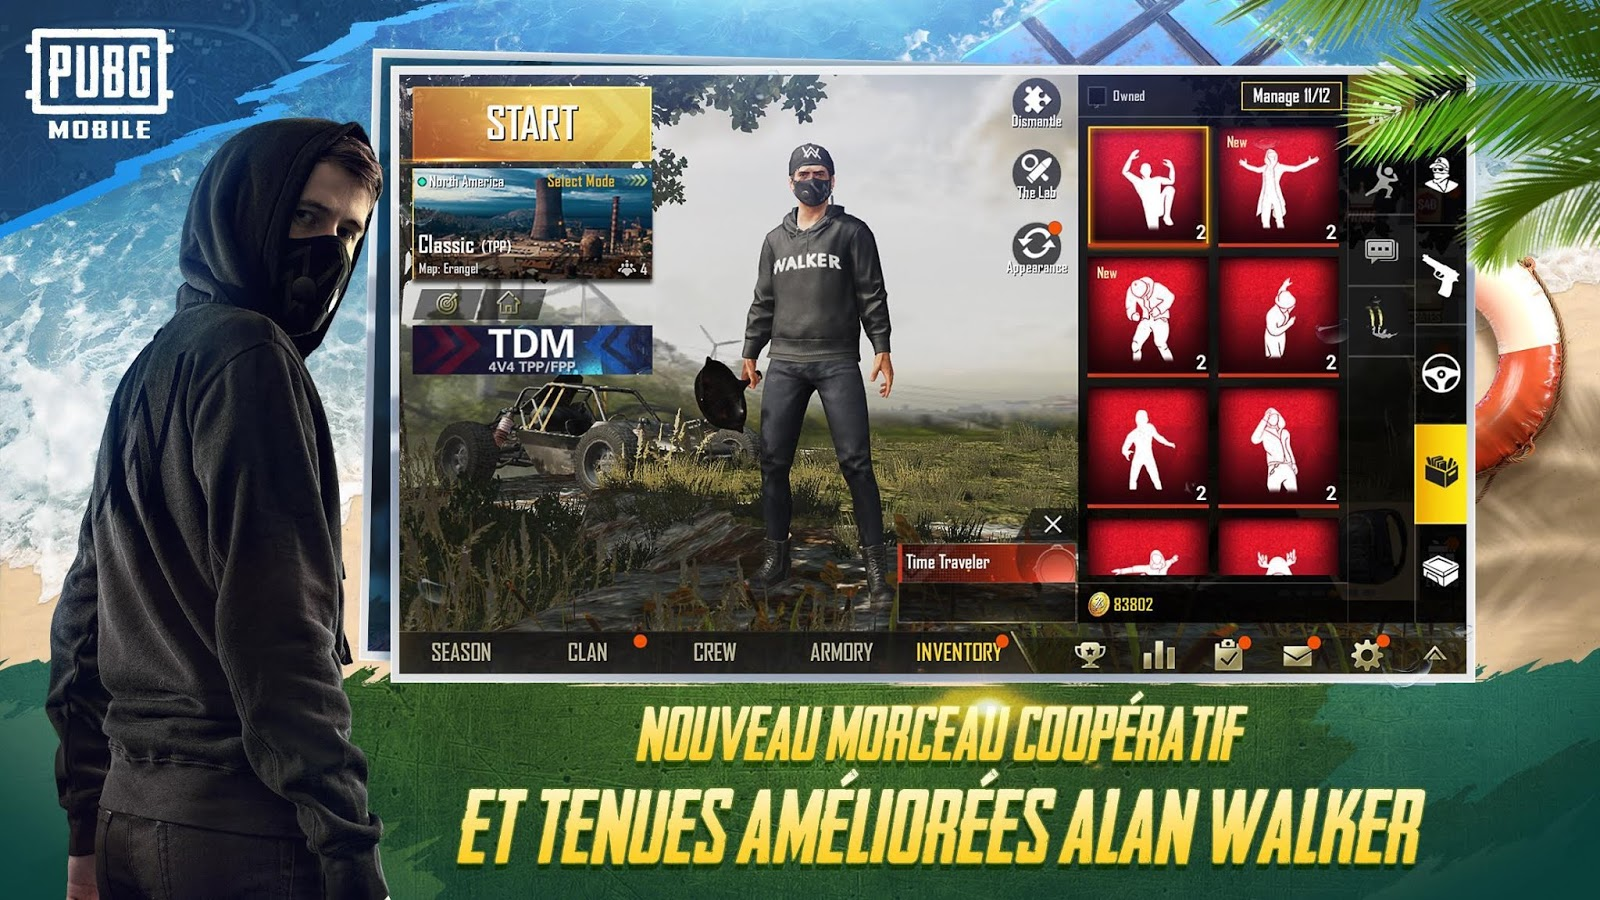 Pubg Mobile Season 9 Leaks 0140 Update New Emotes